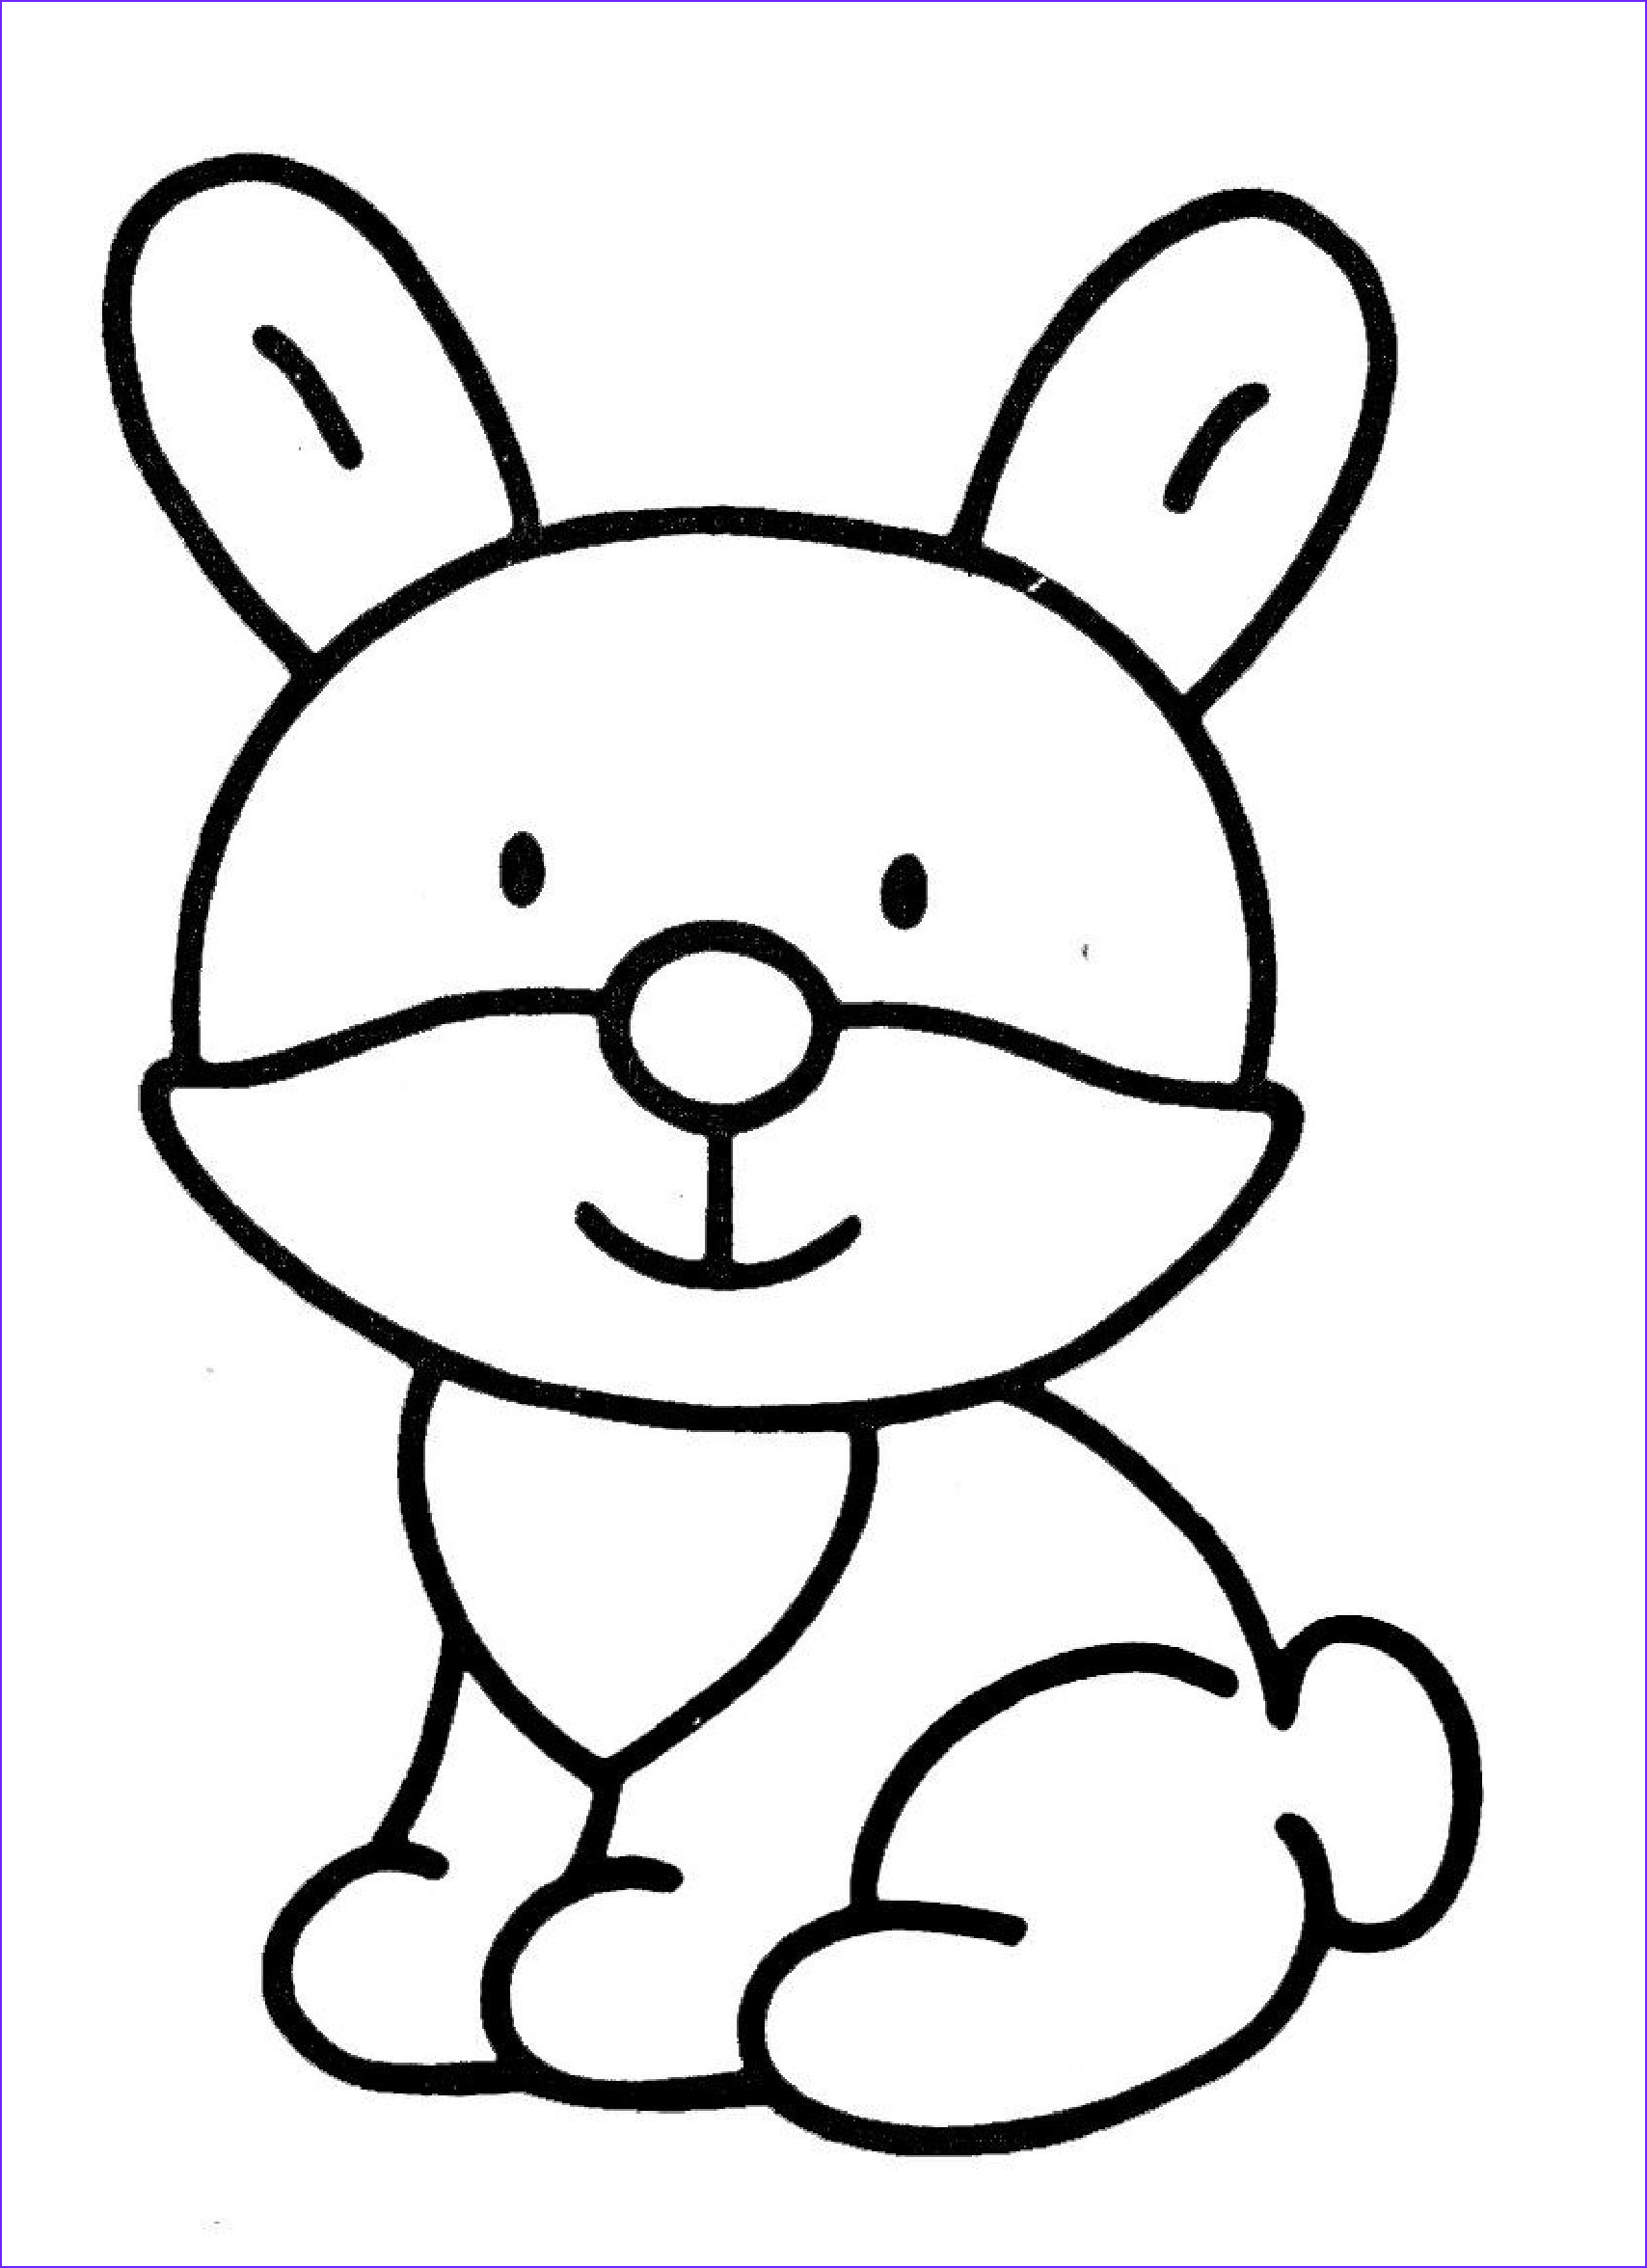 Coloring Pics Beautiful Stock Coloring Pages to and Print for Free